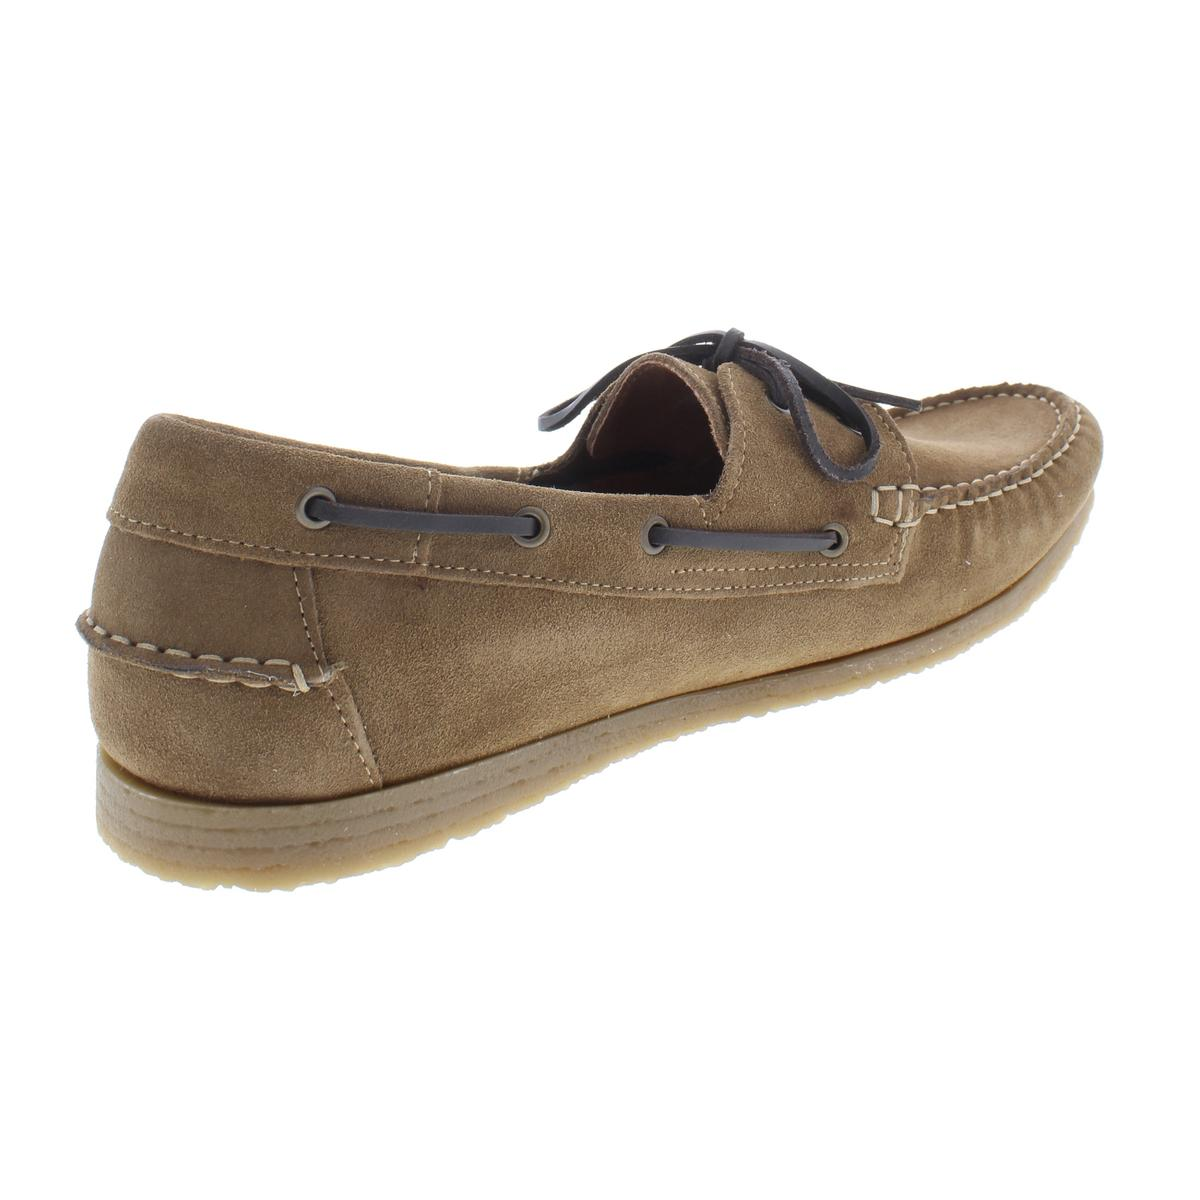 Steve-Madden-Mens-Buoy-Solid-Loafer-Slip-On-Boat-Shoes-BHFO-9944 thumbnail 10